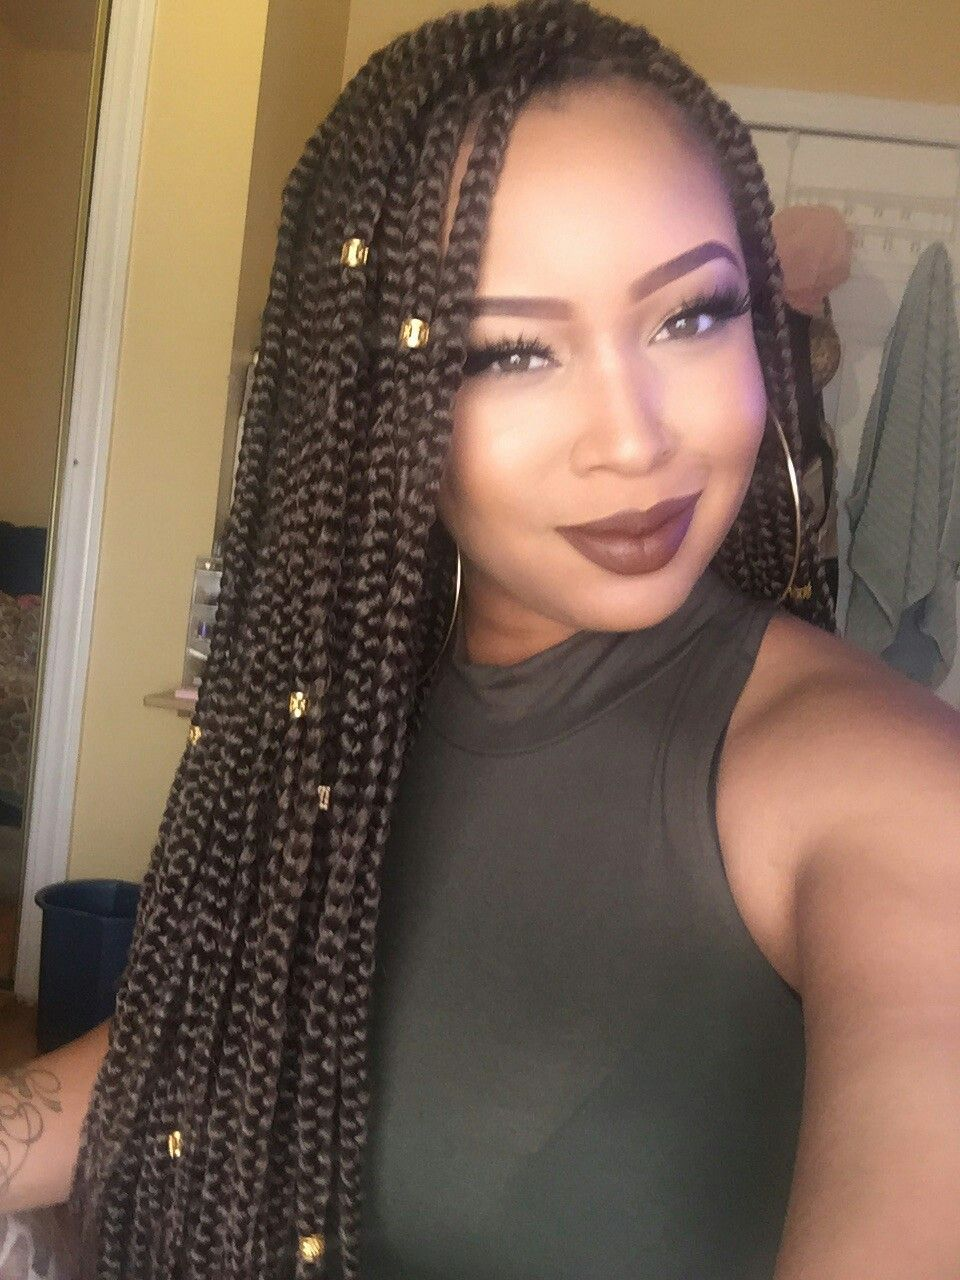 Pleasing Stunningly Cute Ghana Braids Styles For 2017 Individual Braids Short Hairstyles Gunalazisus